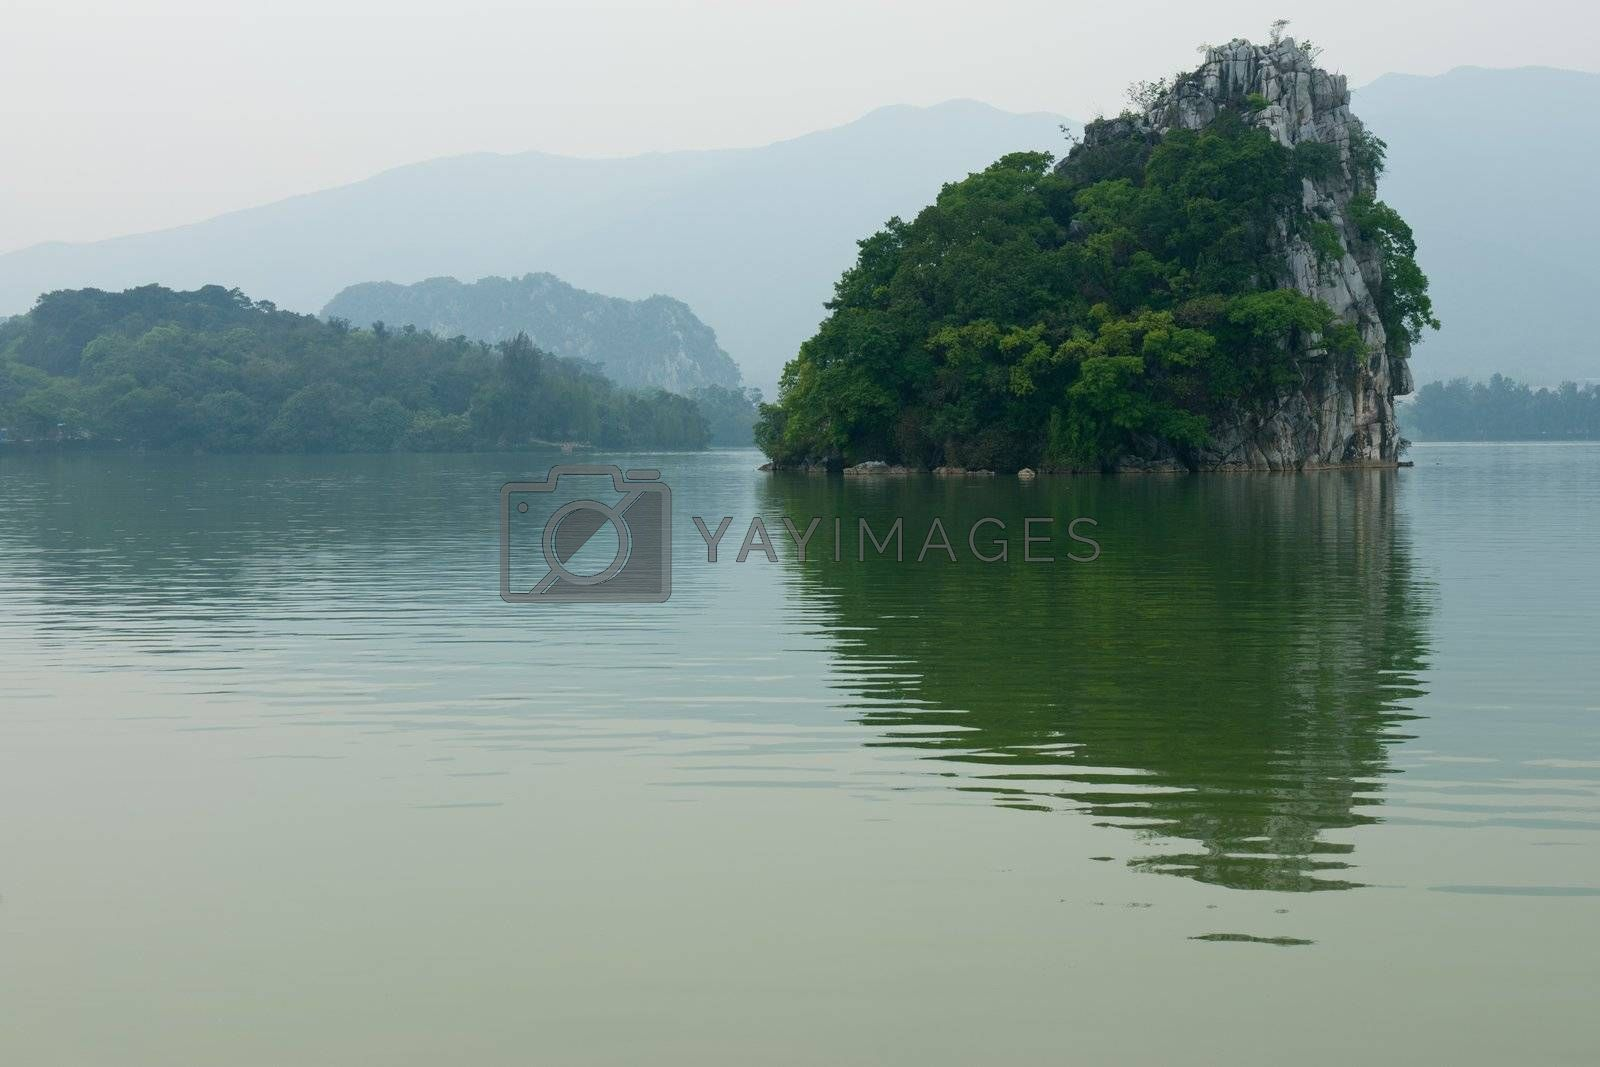 The Star Lake landscape in Zhaoqing, Guangdong province, China